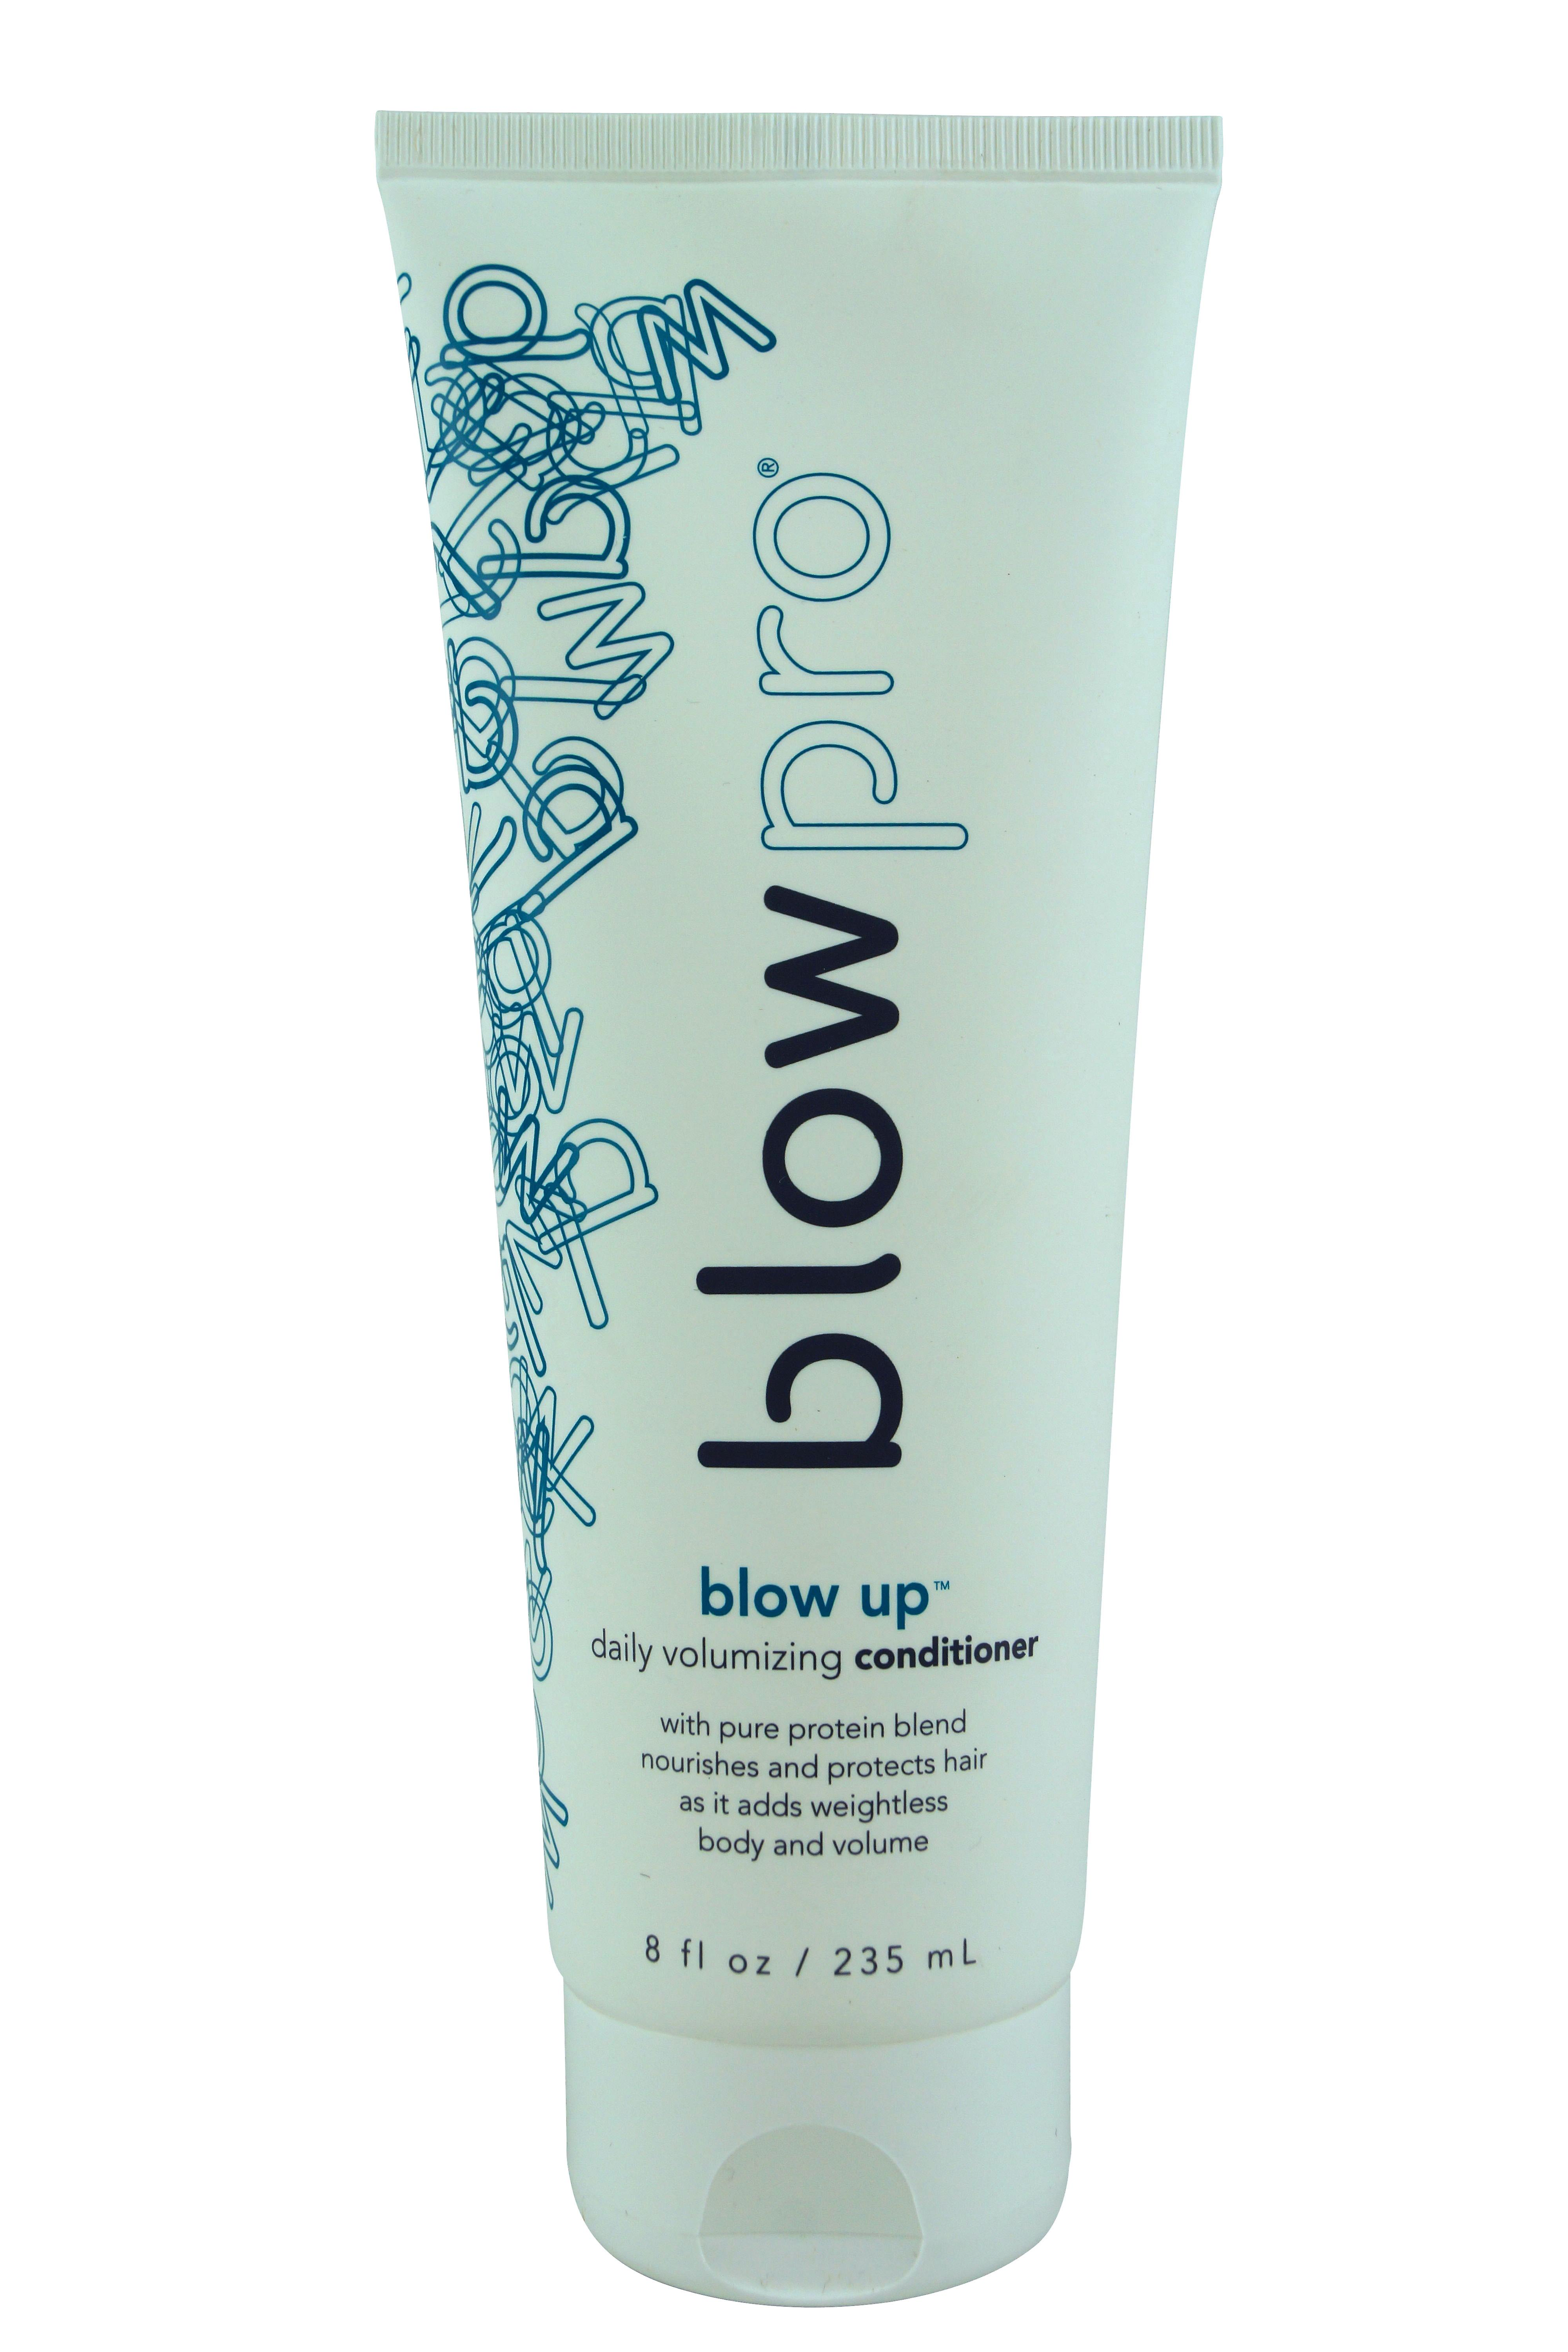 Blowpro Blow Up Daily Volumizing Conditioner, 8.0 oz